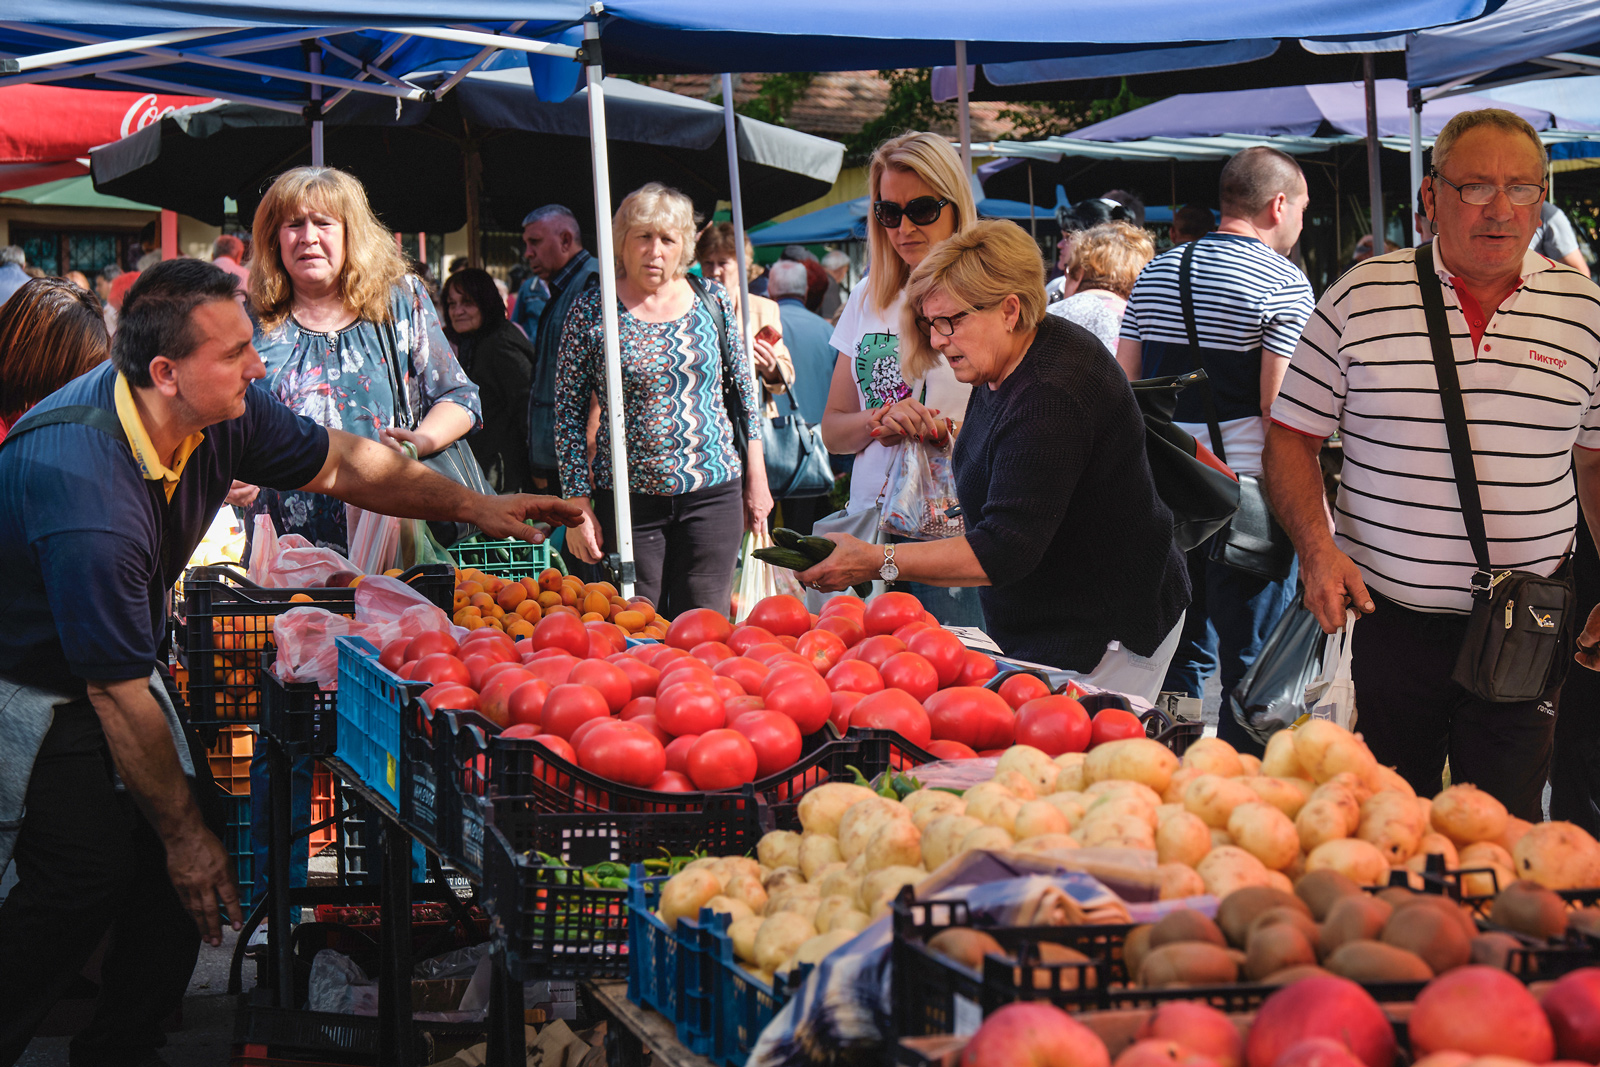 An open market in Pavlikeni, Bulgaria, in the region of Veliko Tarnovo, an area where many British people have decided to reside  Photograph: Jodi Hilton for Point.51